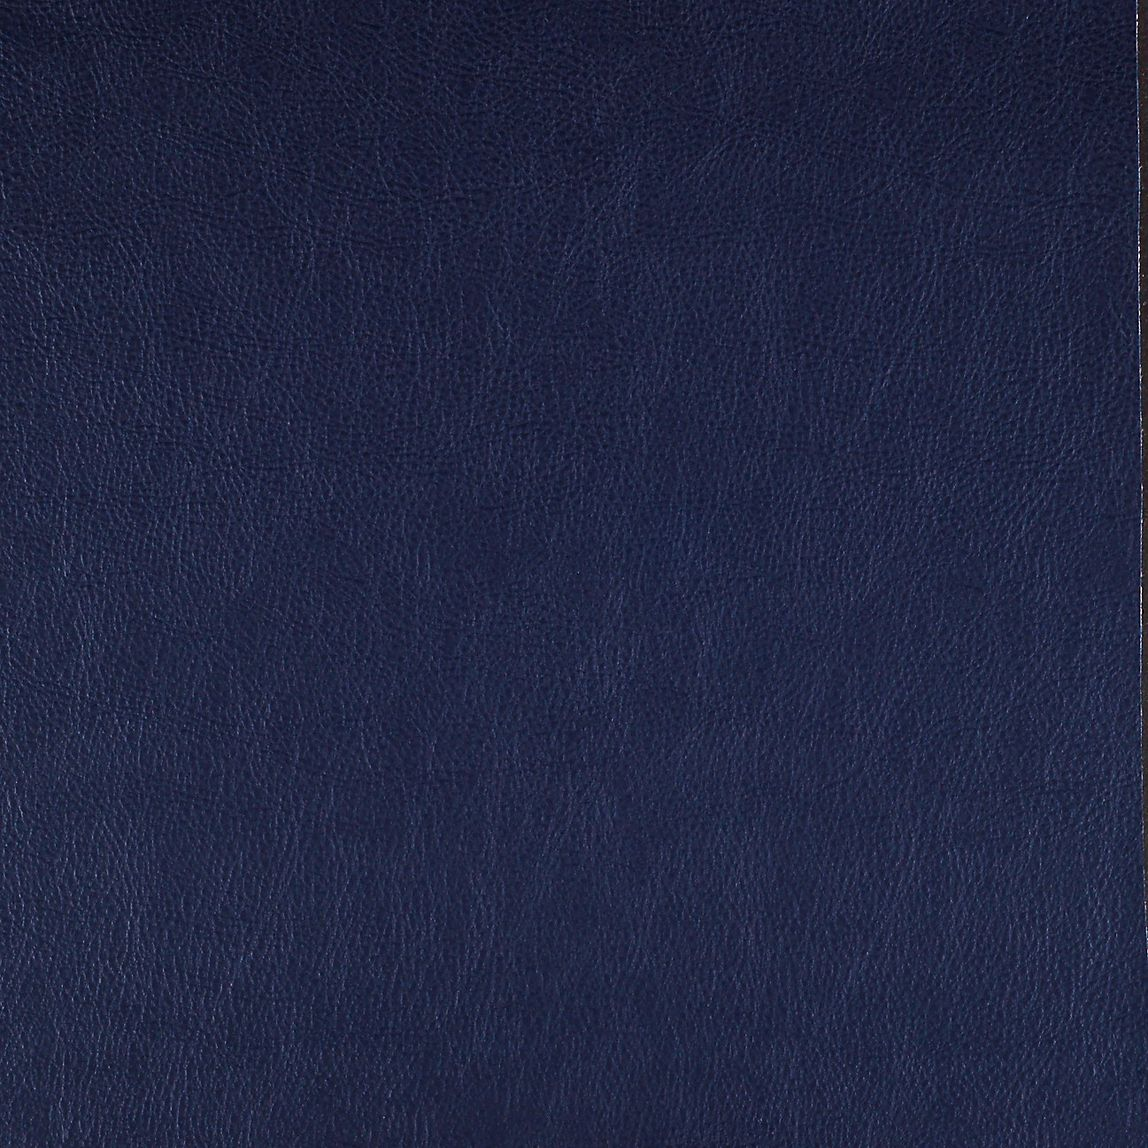 Lariat Navy Swatch